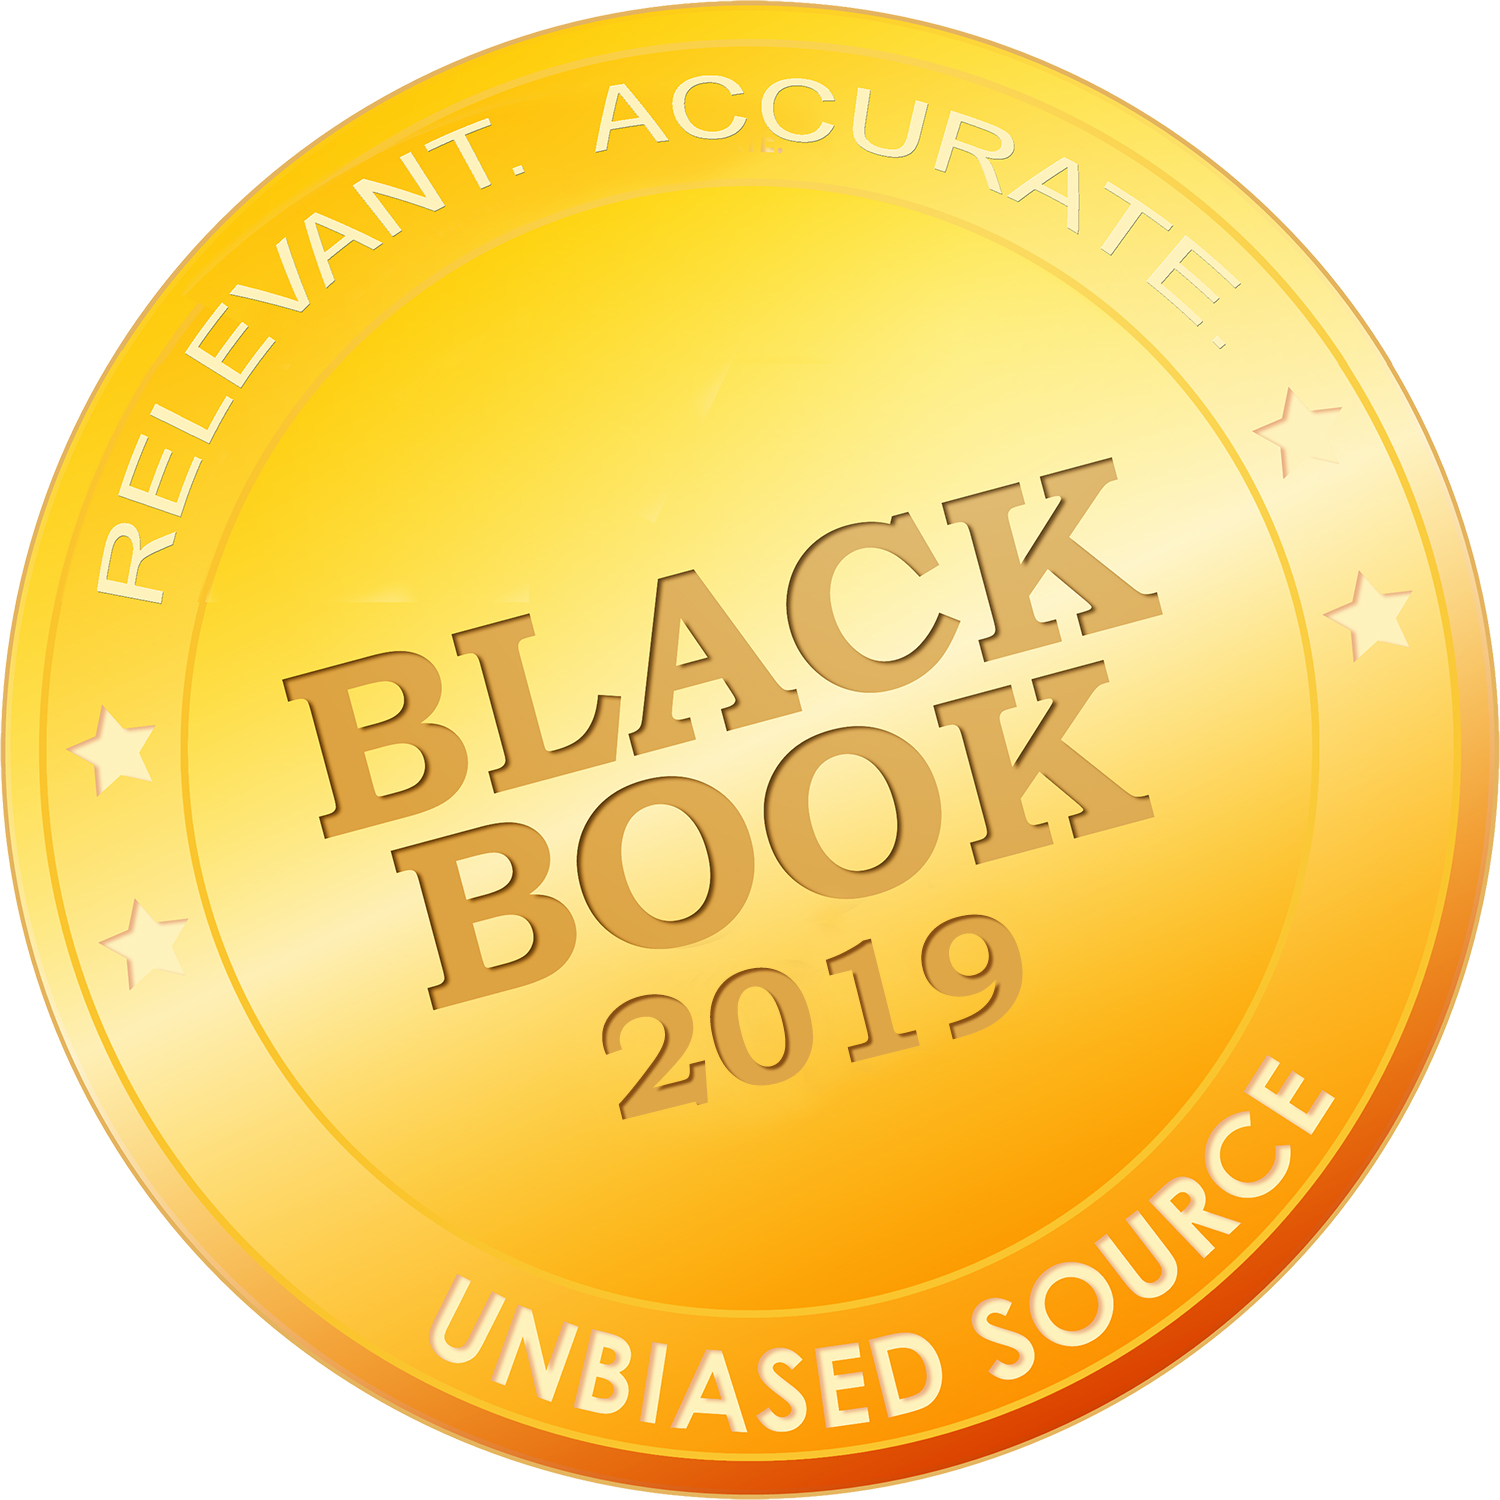 2019 HIT EHR Tech Support & Client Service Ratings Top 20 Black Book